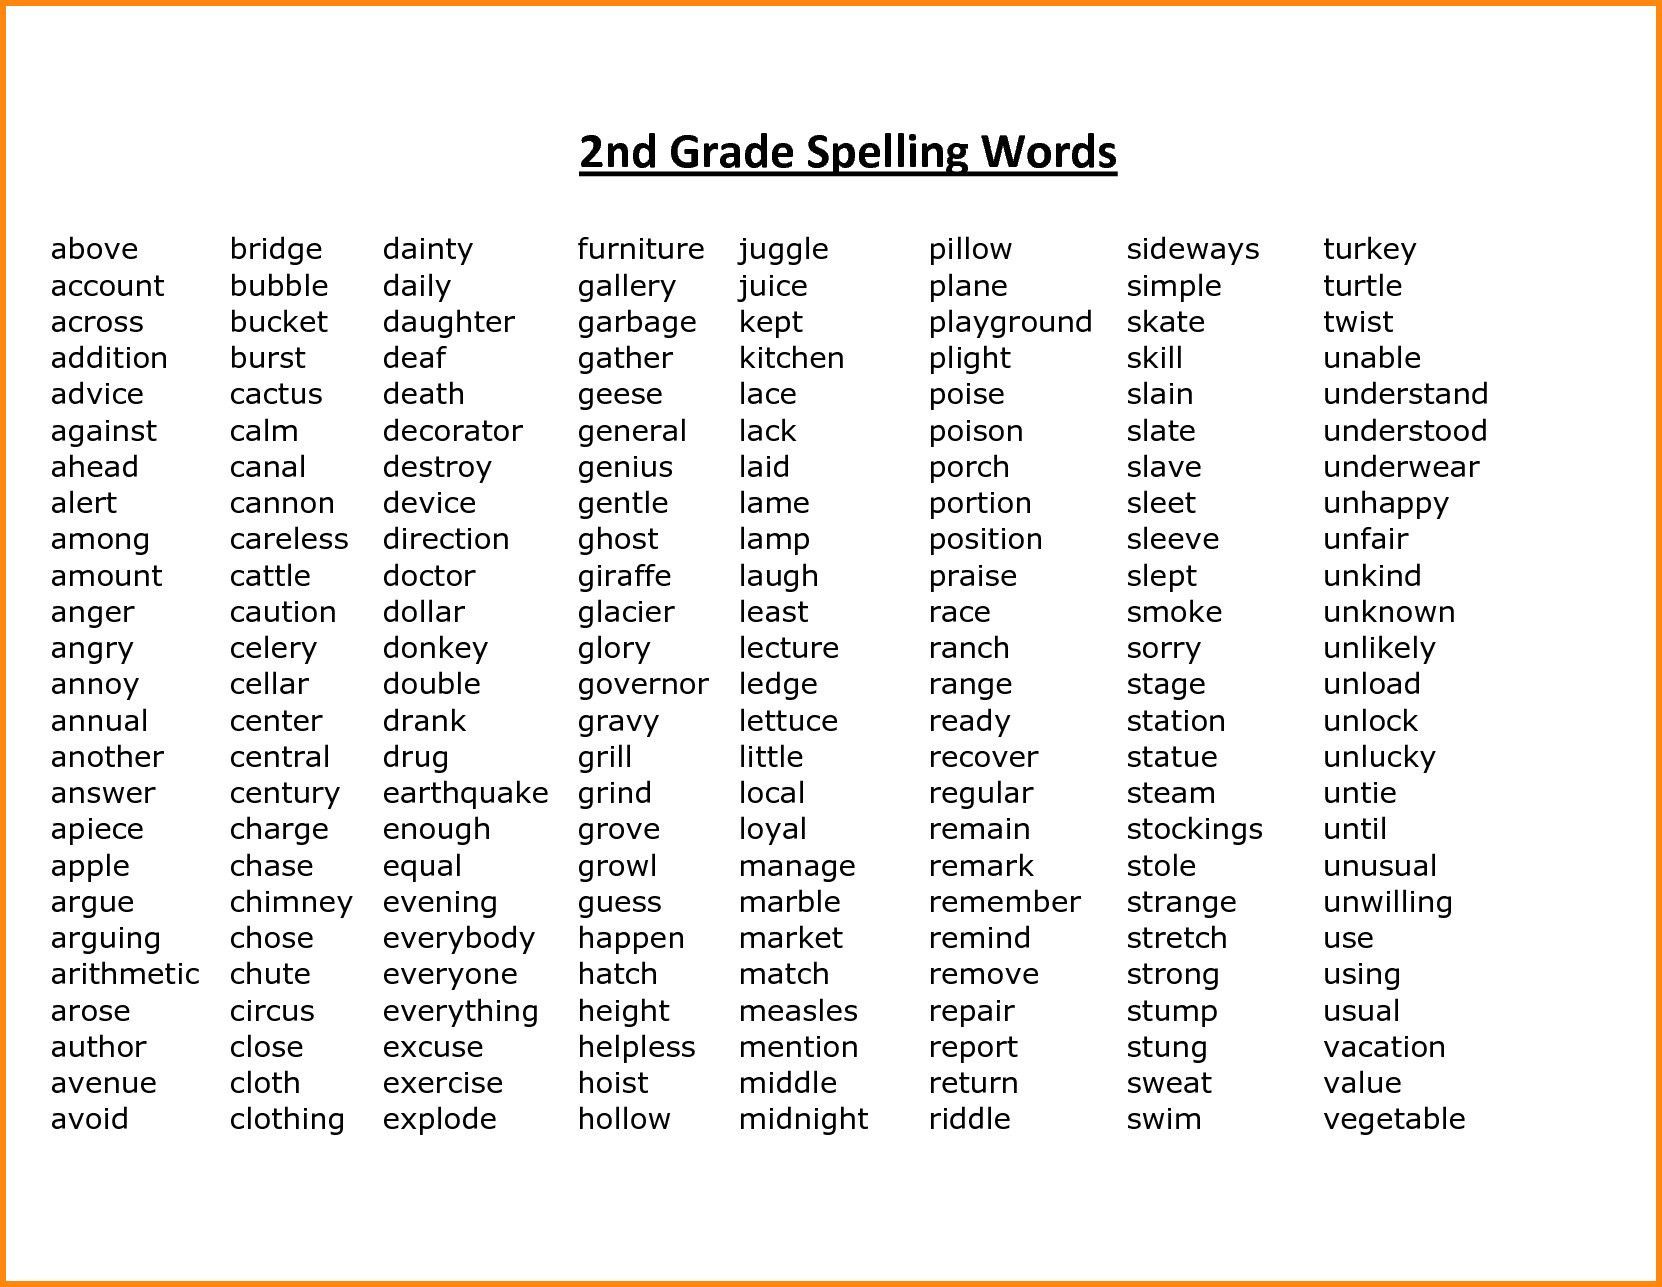 2nd Grade Spelling Words Worksheets 2nd Grade Spelling Words Best Coloring Pages for Kids In